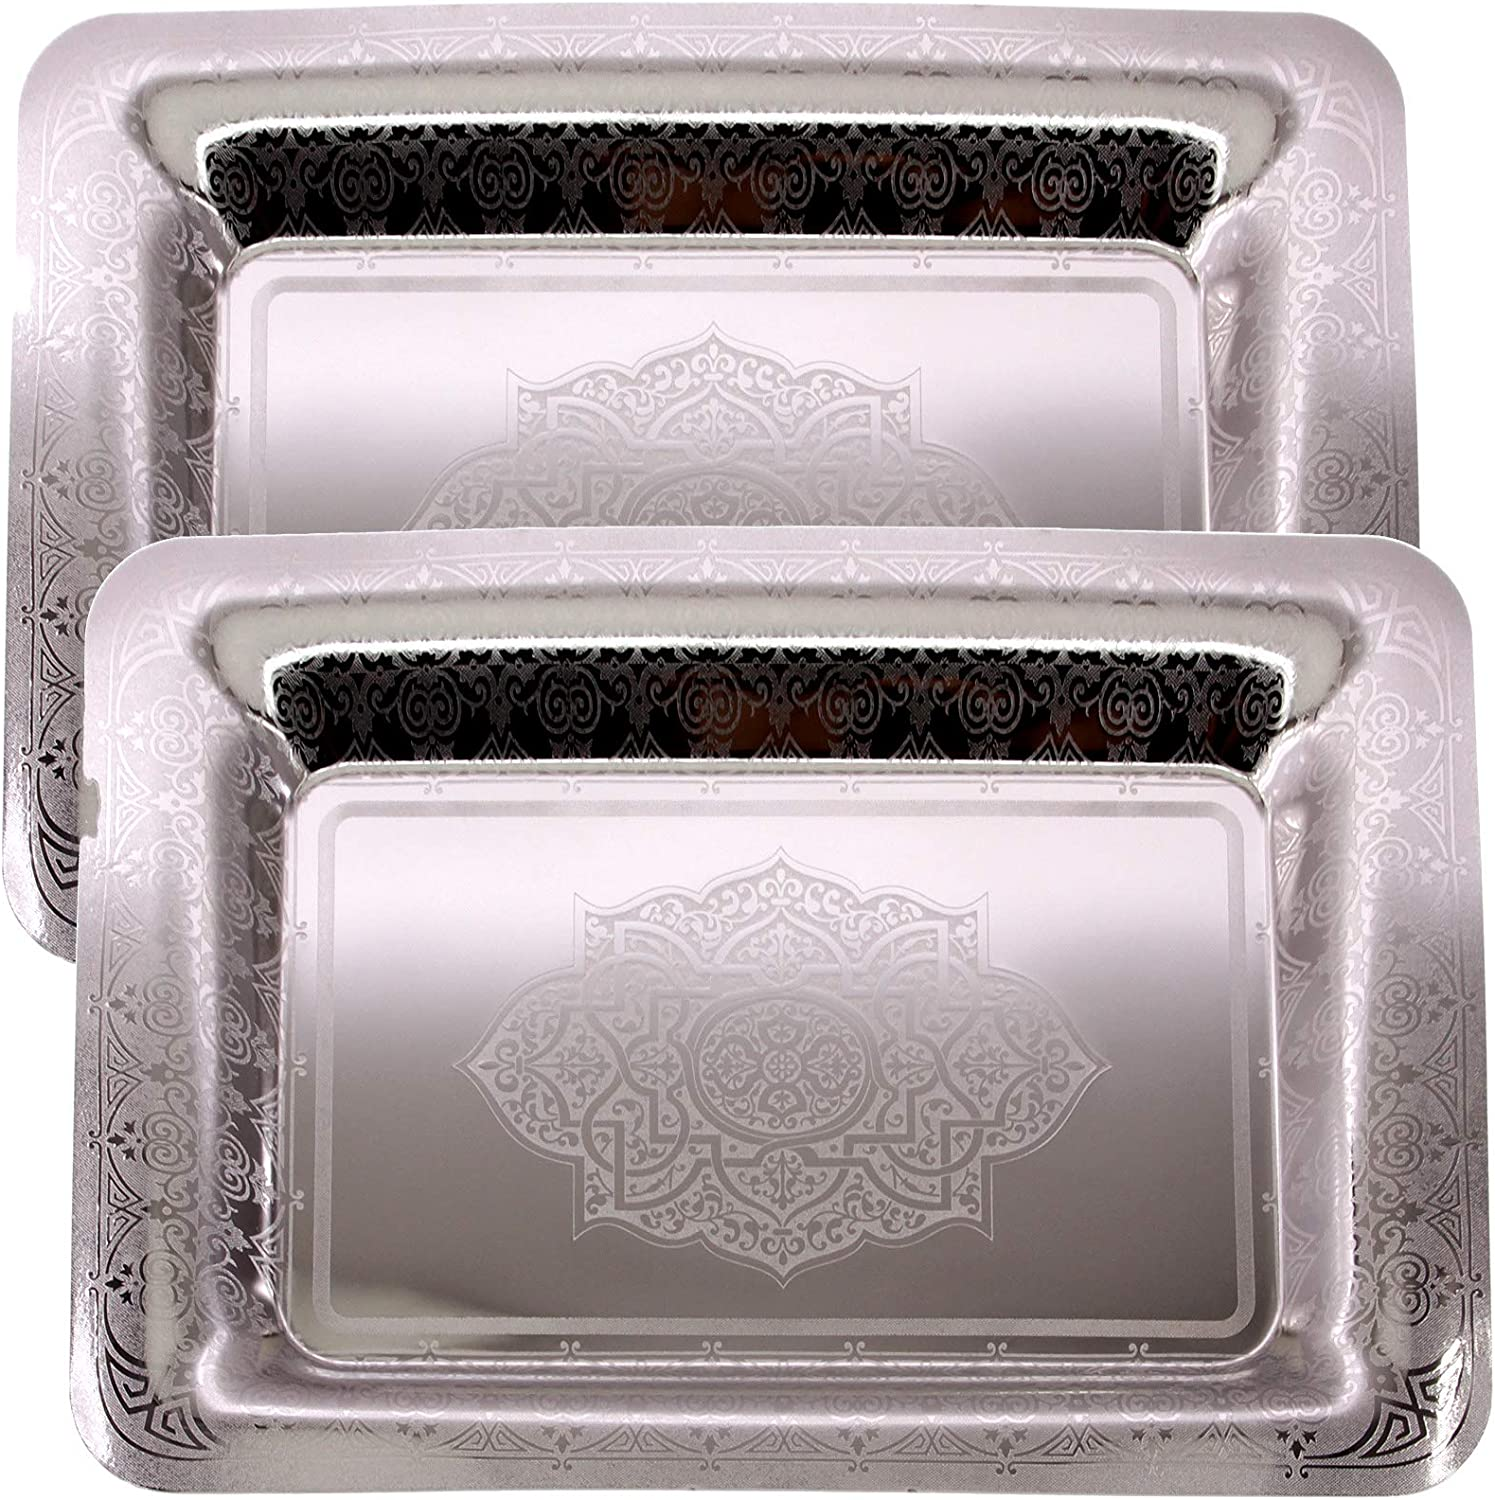 Maro Megastore (Pack of 2) 18.6 inch x 13 inch Oblong Chrome Plated Mirror Silver Serving Tray Stylish Design Floral Engraved Edge Decorative Party Birthday Wedding Buffet Wine Platter Plate TLA-348